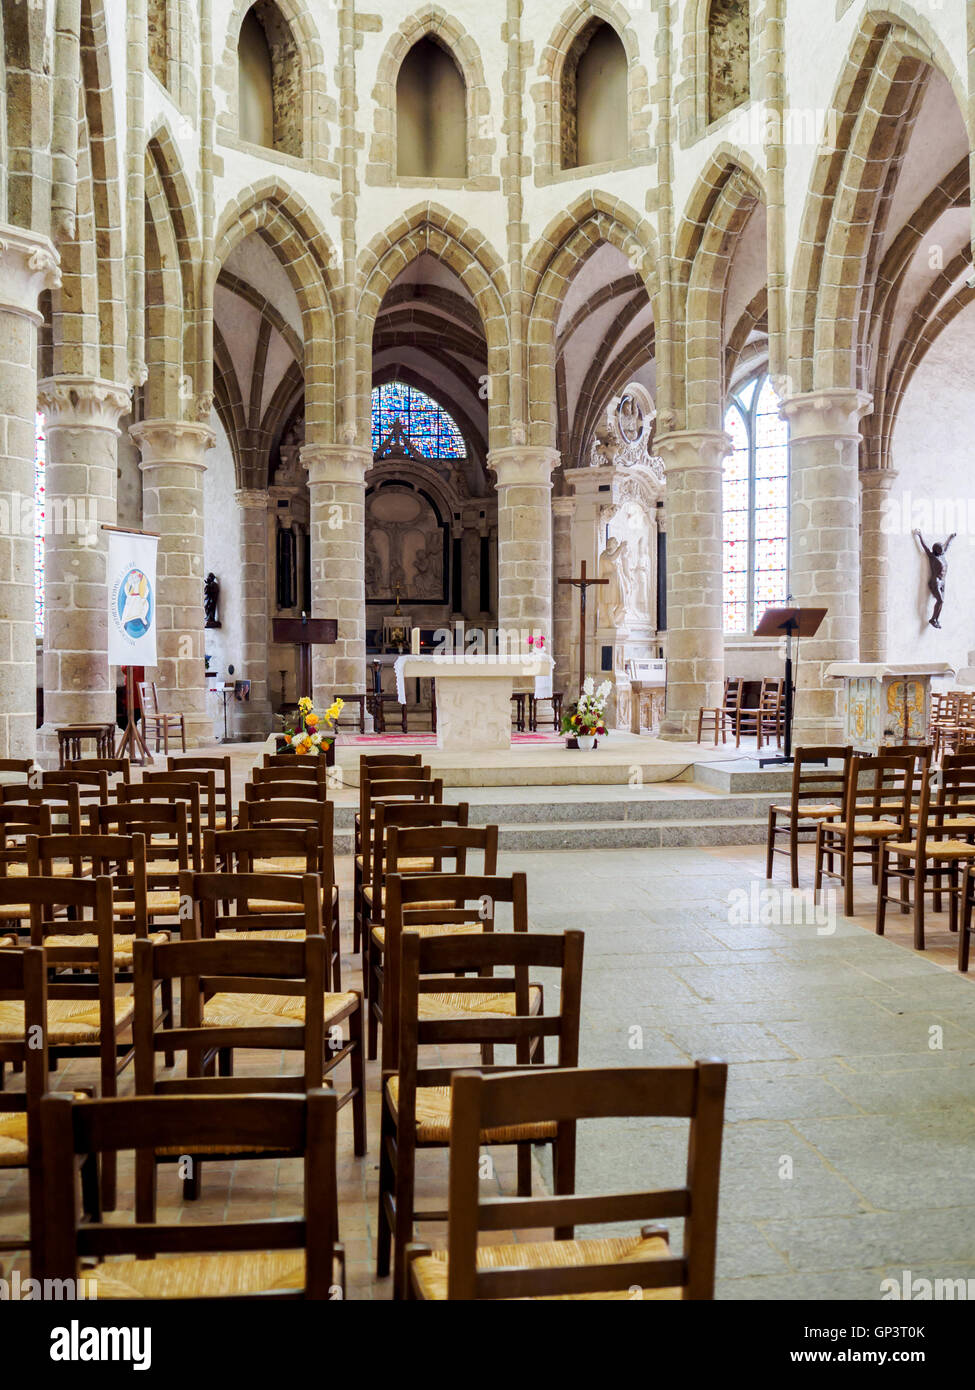 Interior of Abbaye de Lonlay in Lonlay-l'Abbaye, near Domfront, Normandy France, a medieval monastic church. - Stock Image